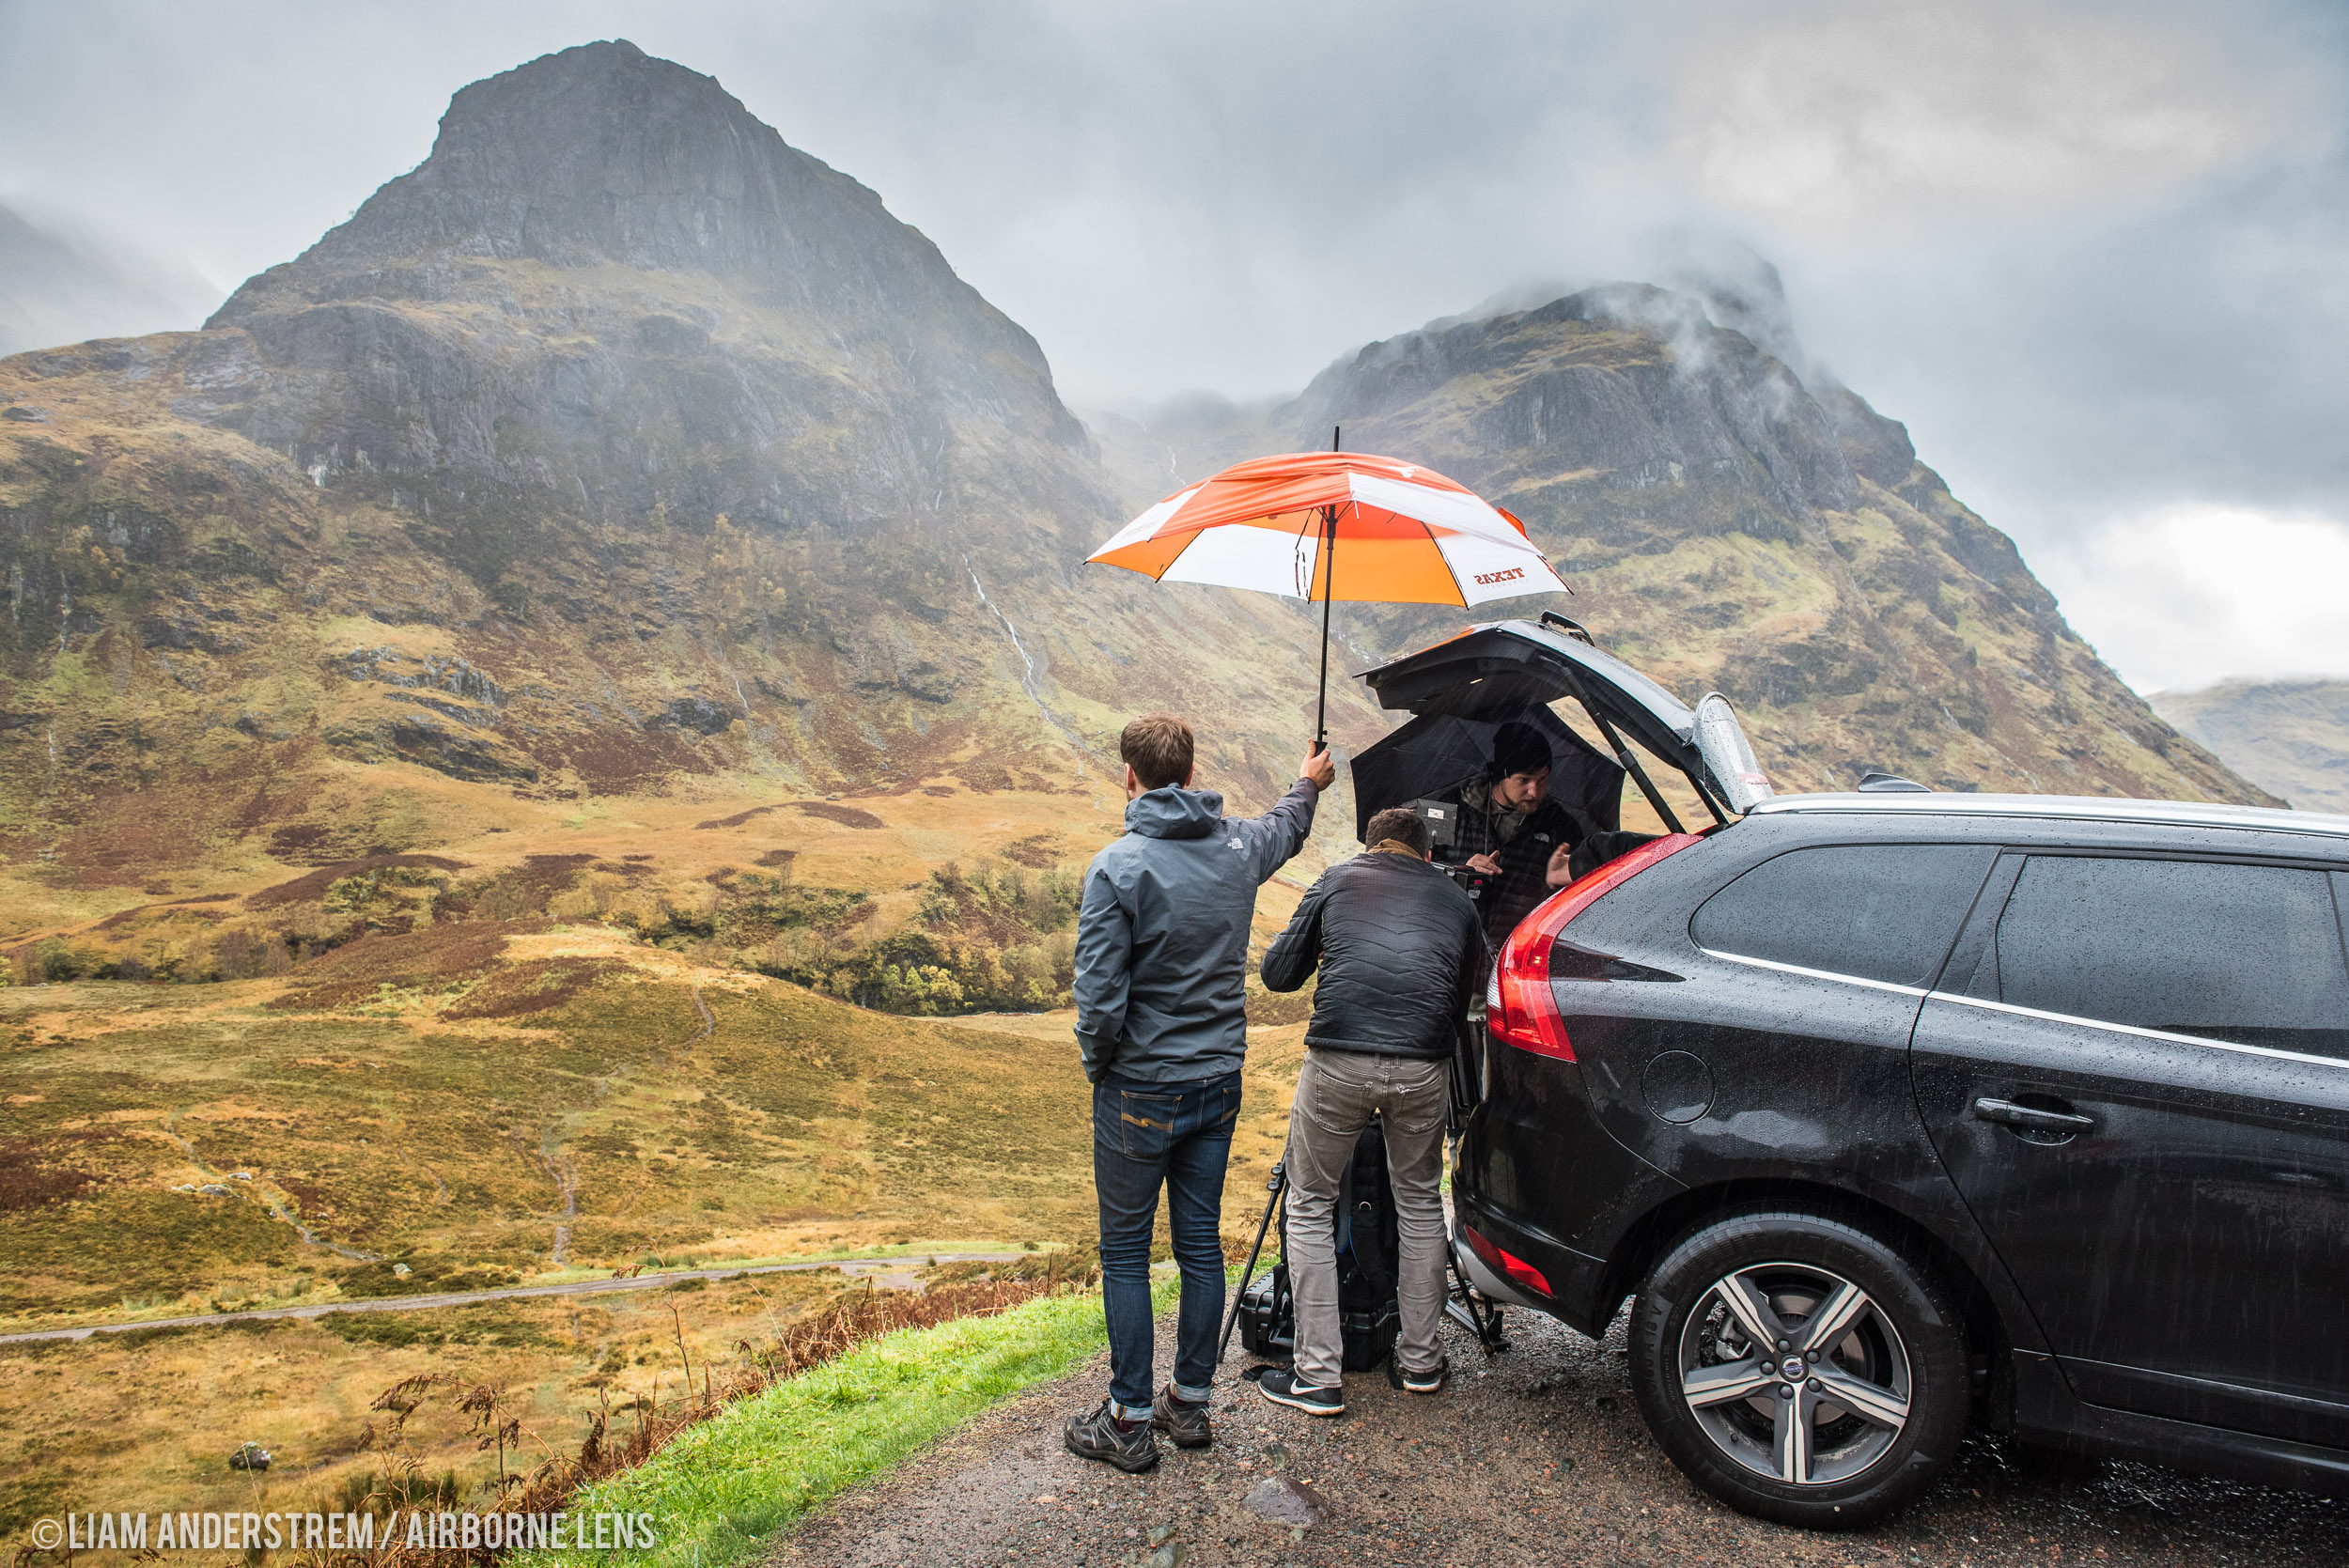 Sheltering from the rain while shooting in stunning Glencoe. The Texas umbrella is Liam's! Image Liam Anderstrem / Airborne Lens